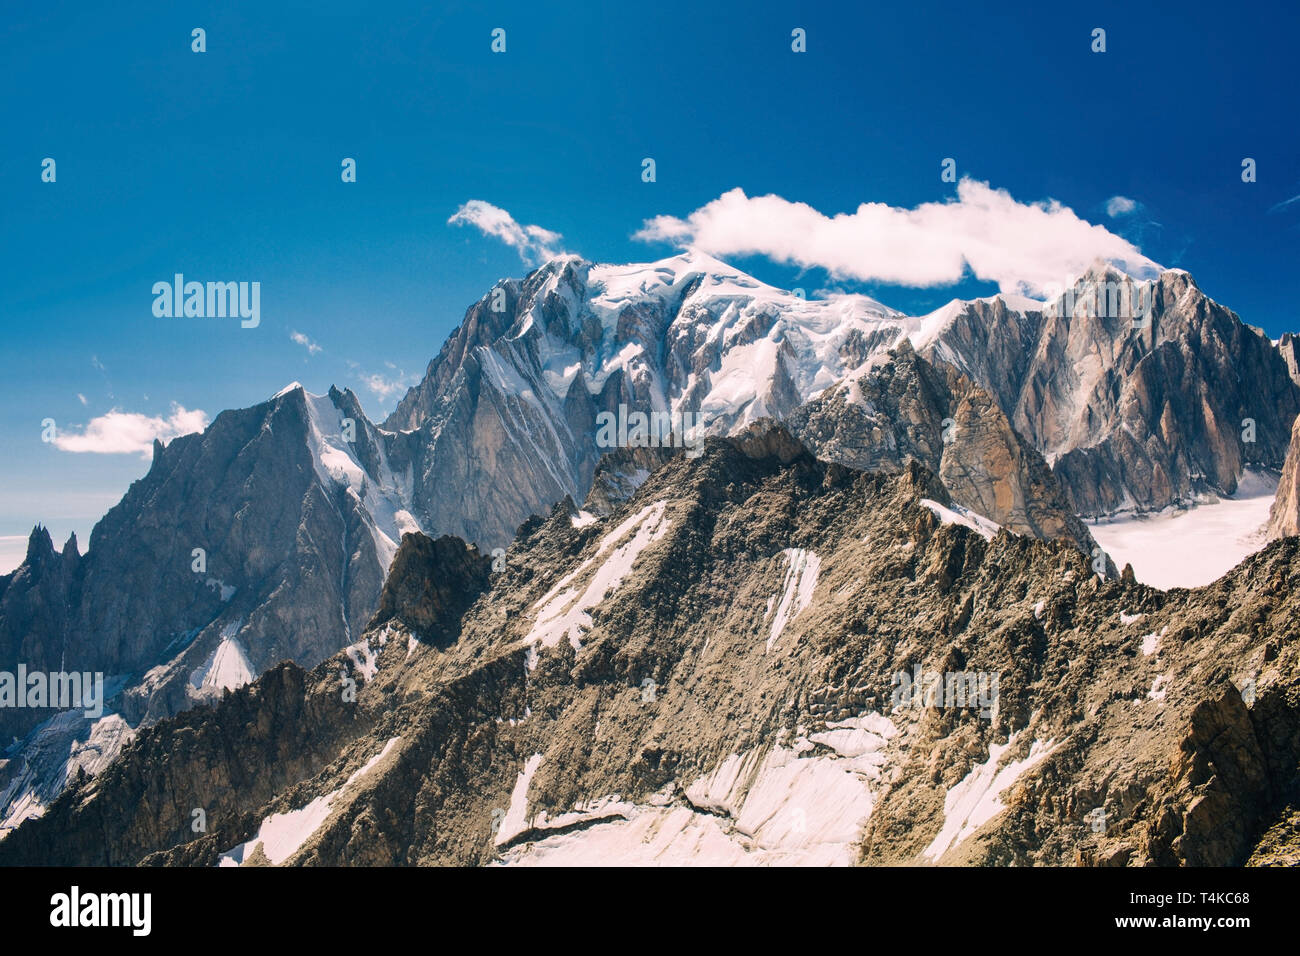 view to Mont Blanc mountain peak, from Punta Helbronner at Courmayeur, Italy Stock Photo